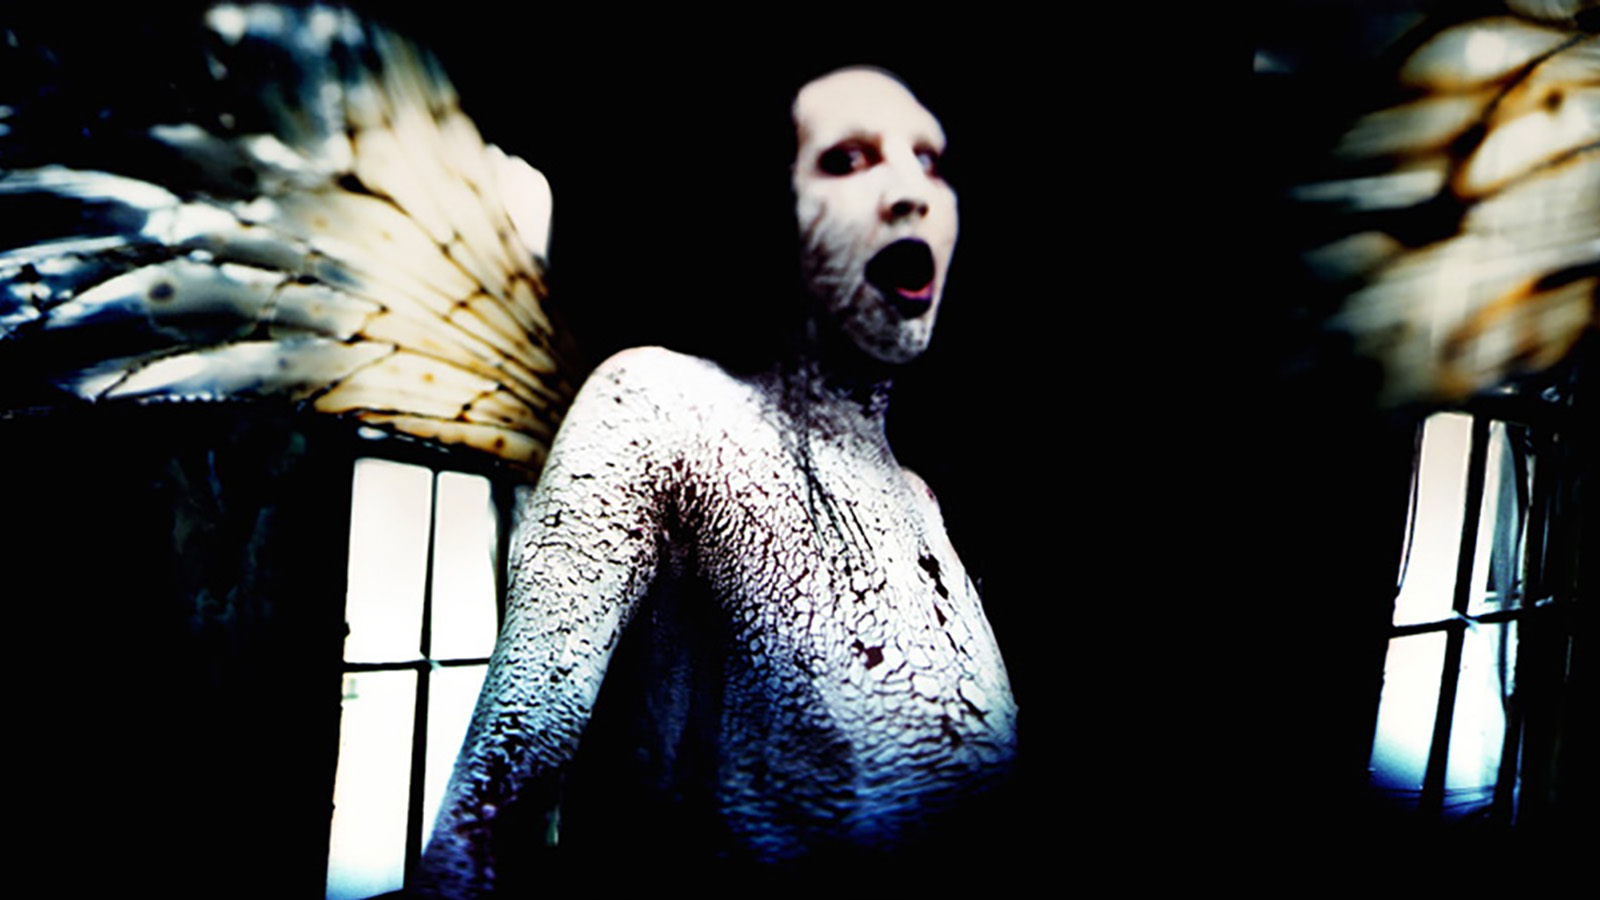 Marilyn Manson Antichrist Superstar Artwork